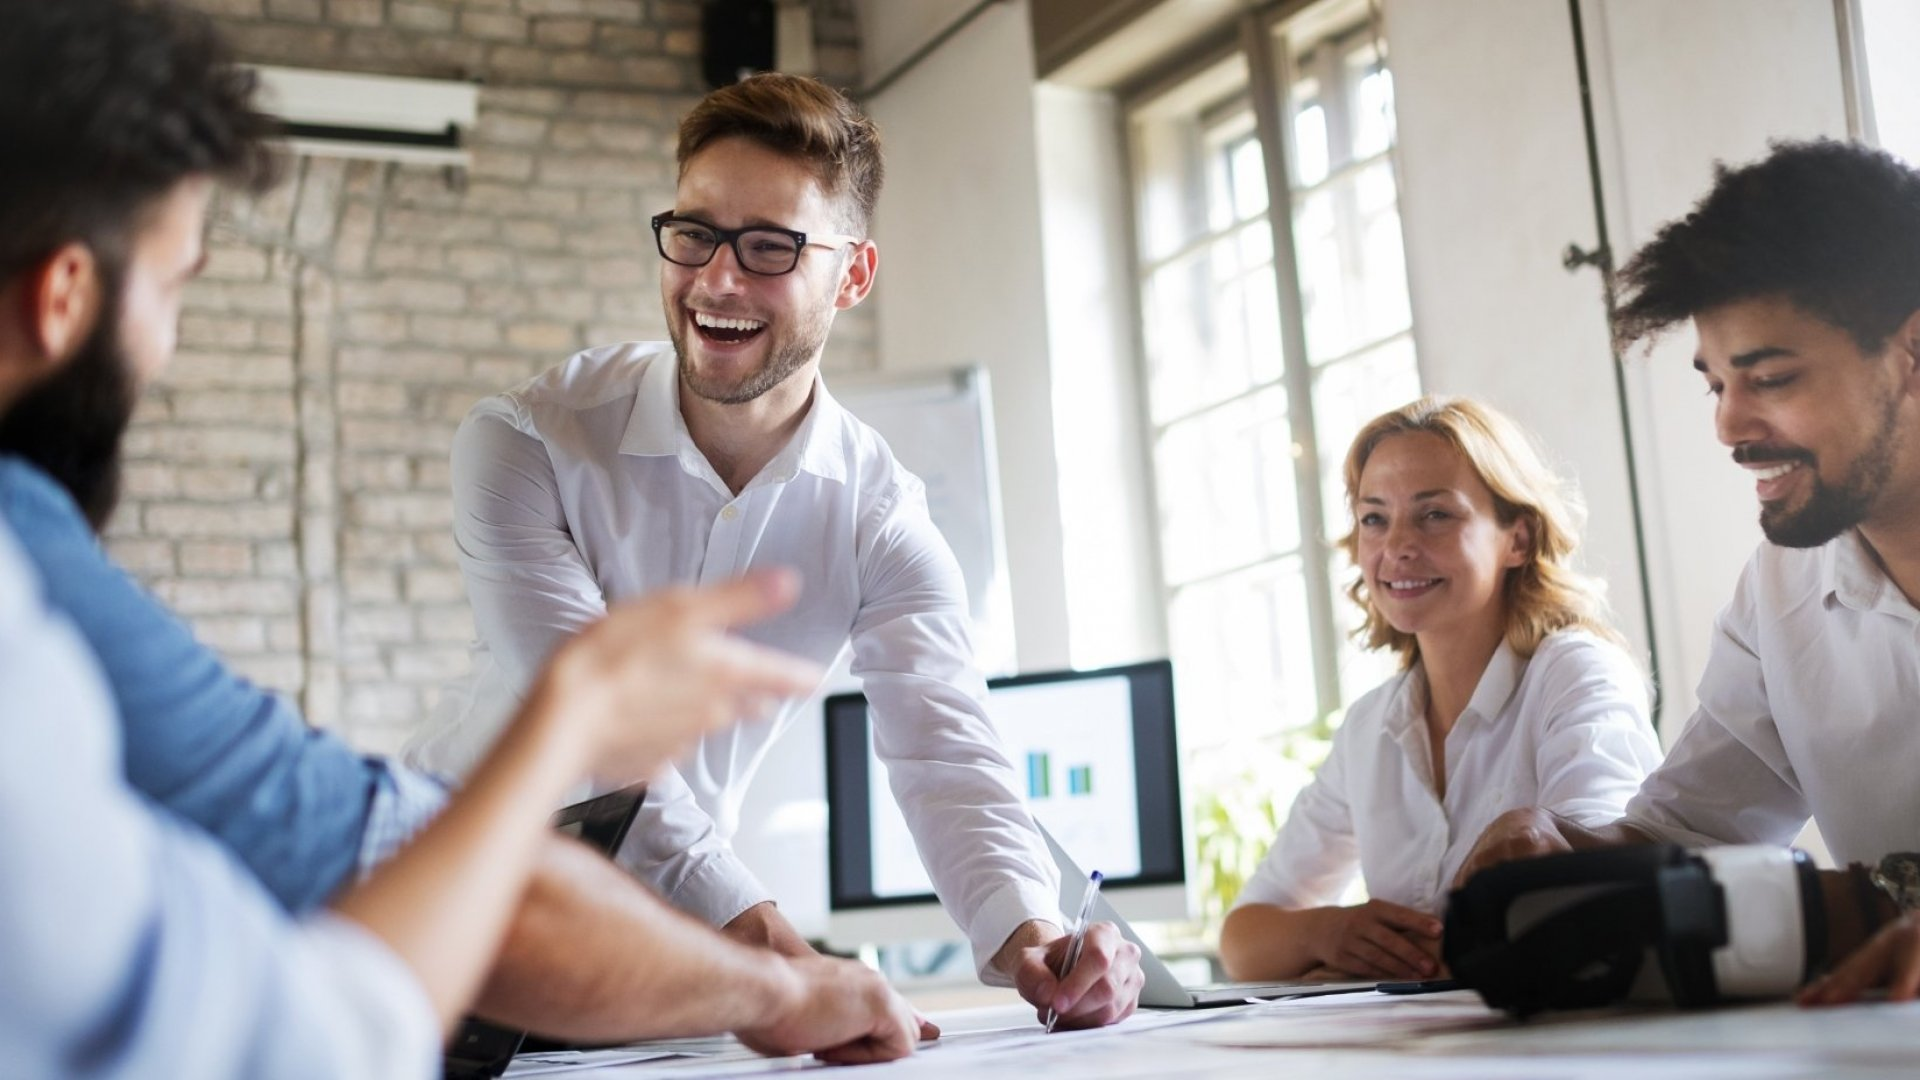 Understanding the Three Essential Elements of Employee Experience